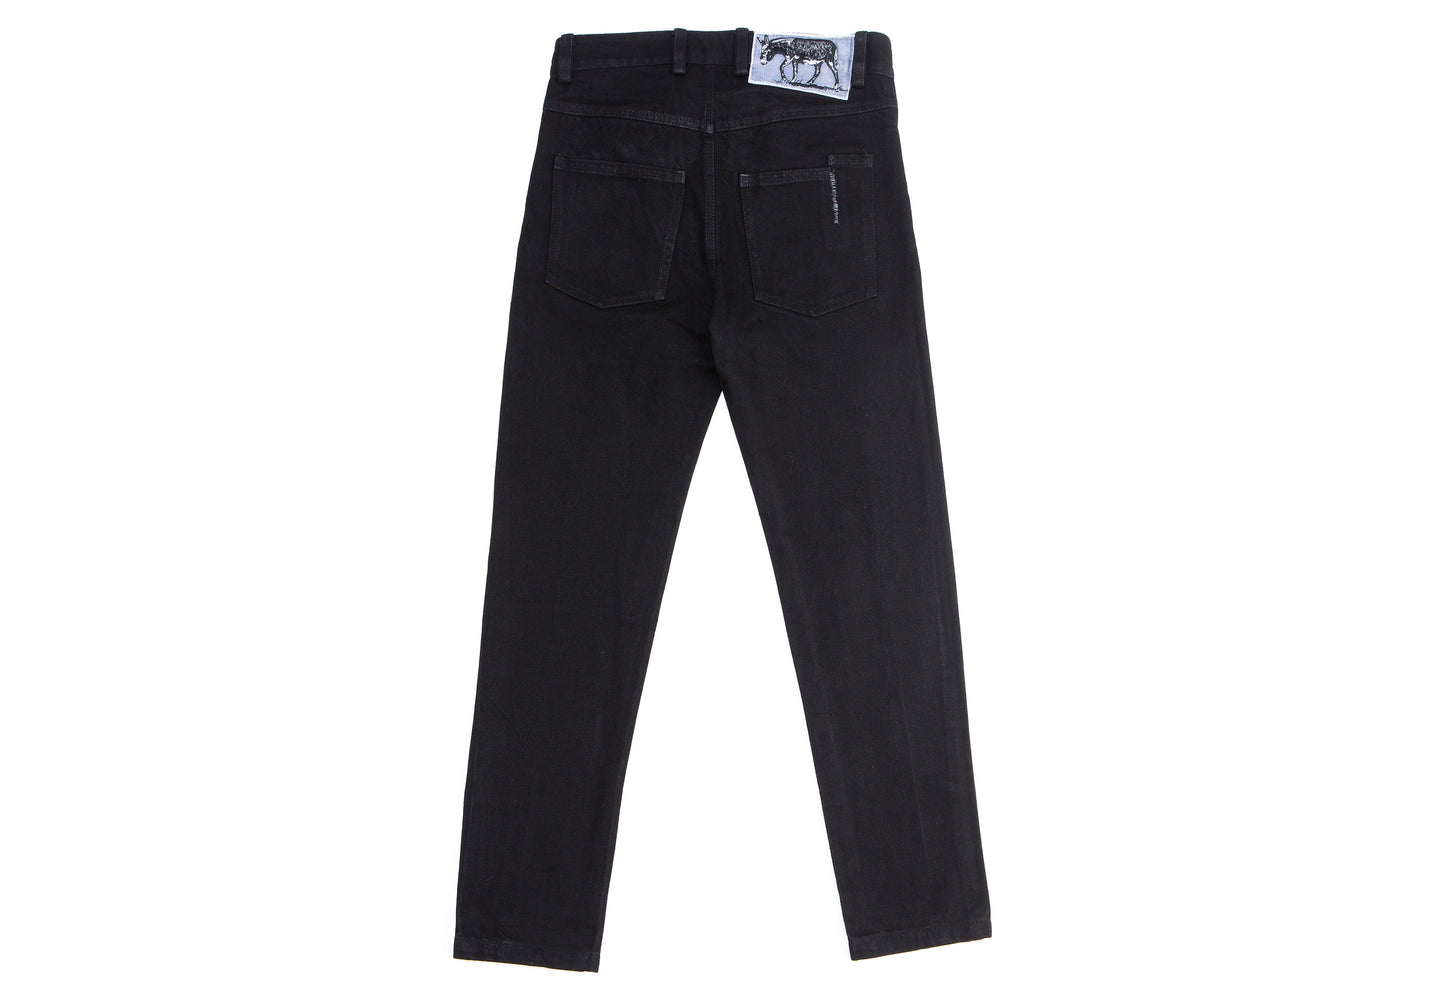 GRIEF CLASSIC JEANS